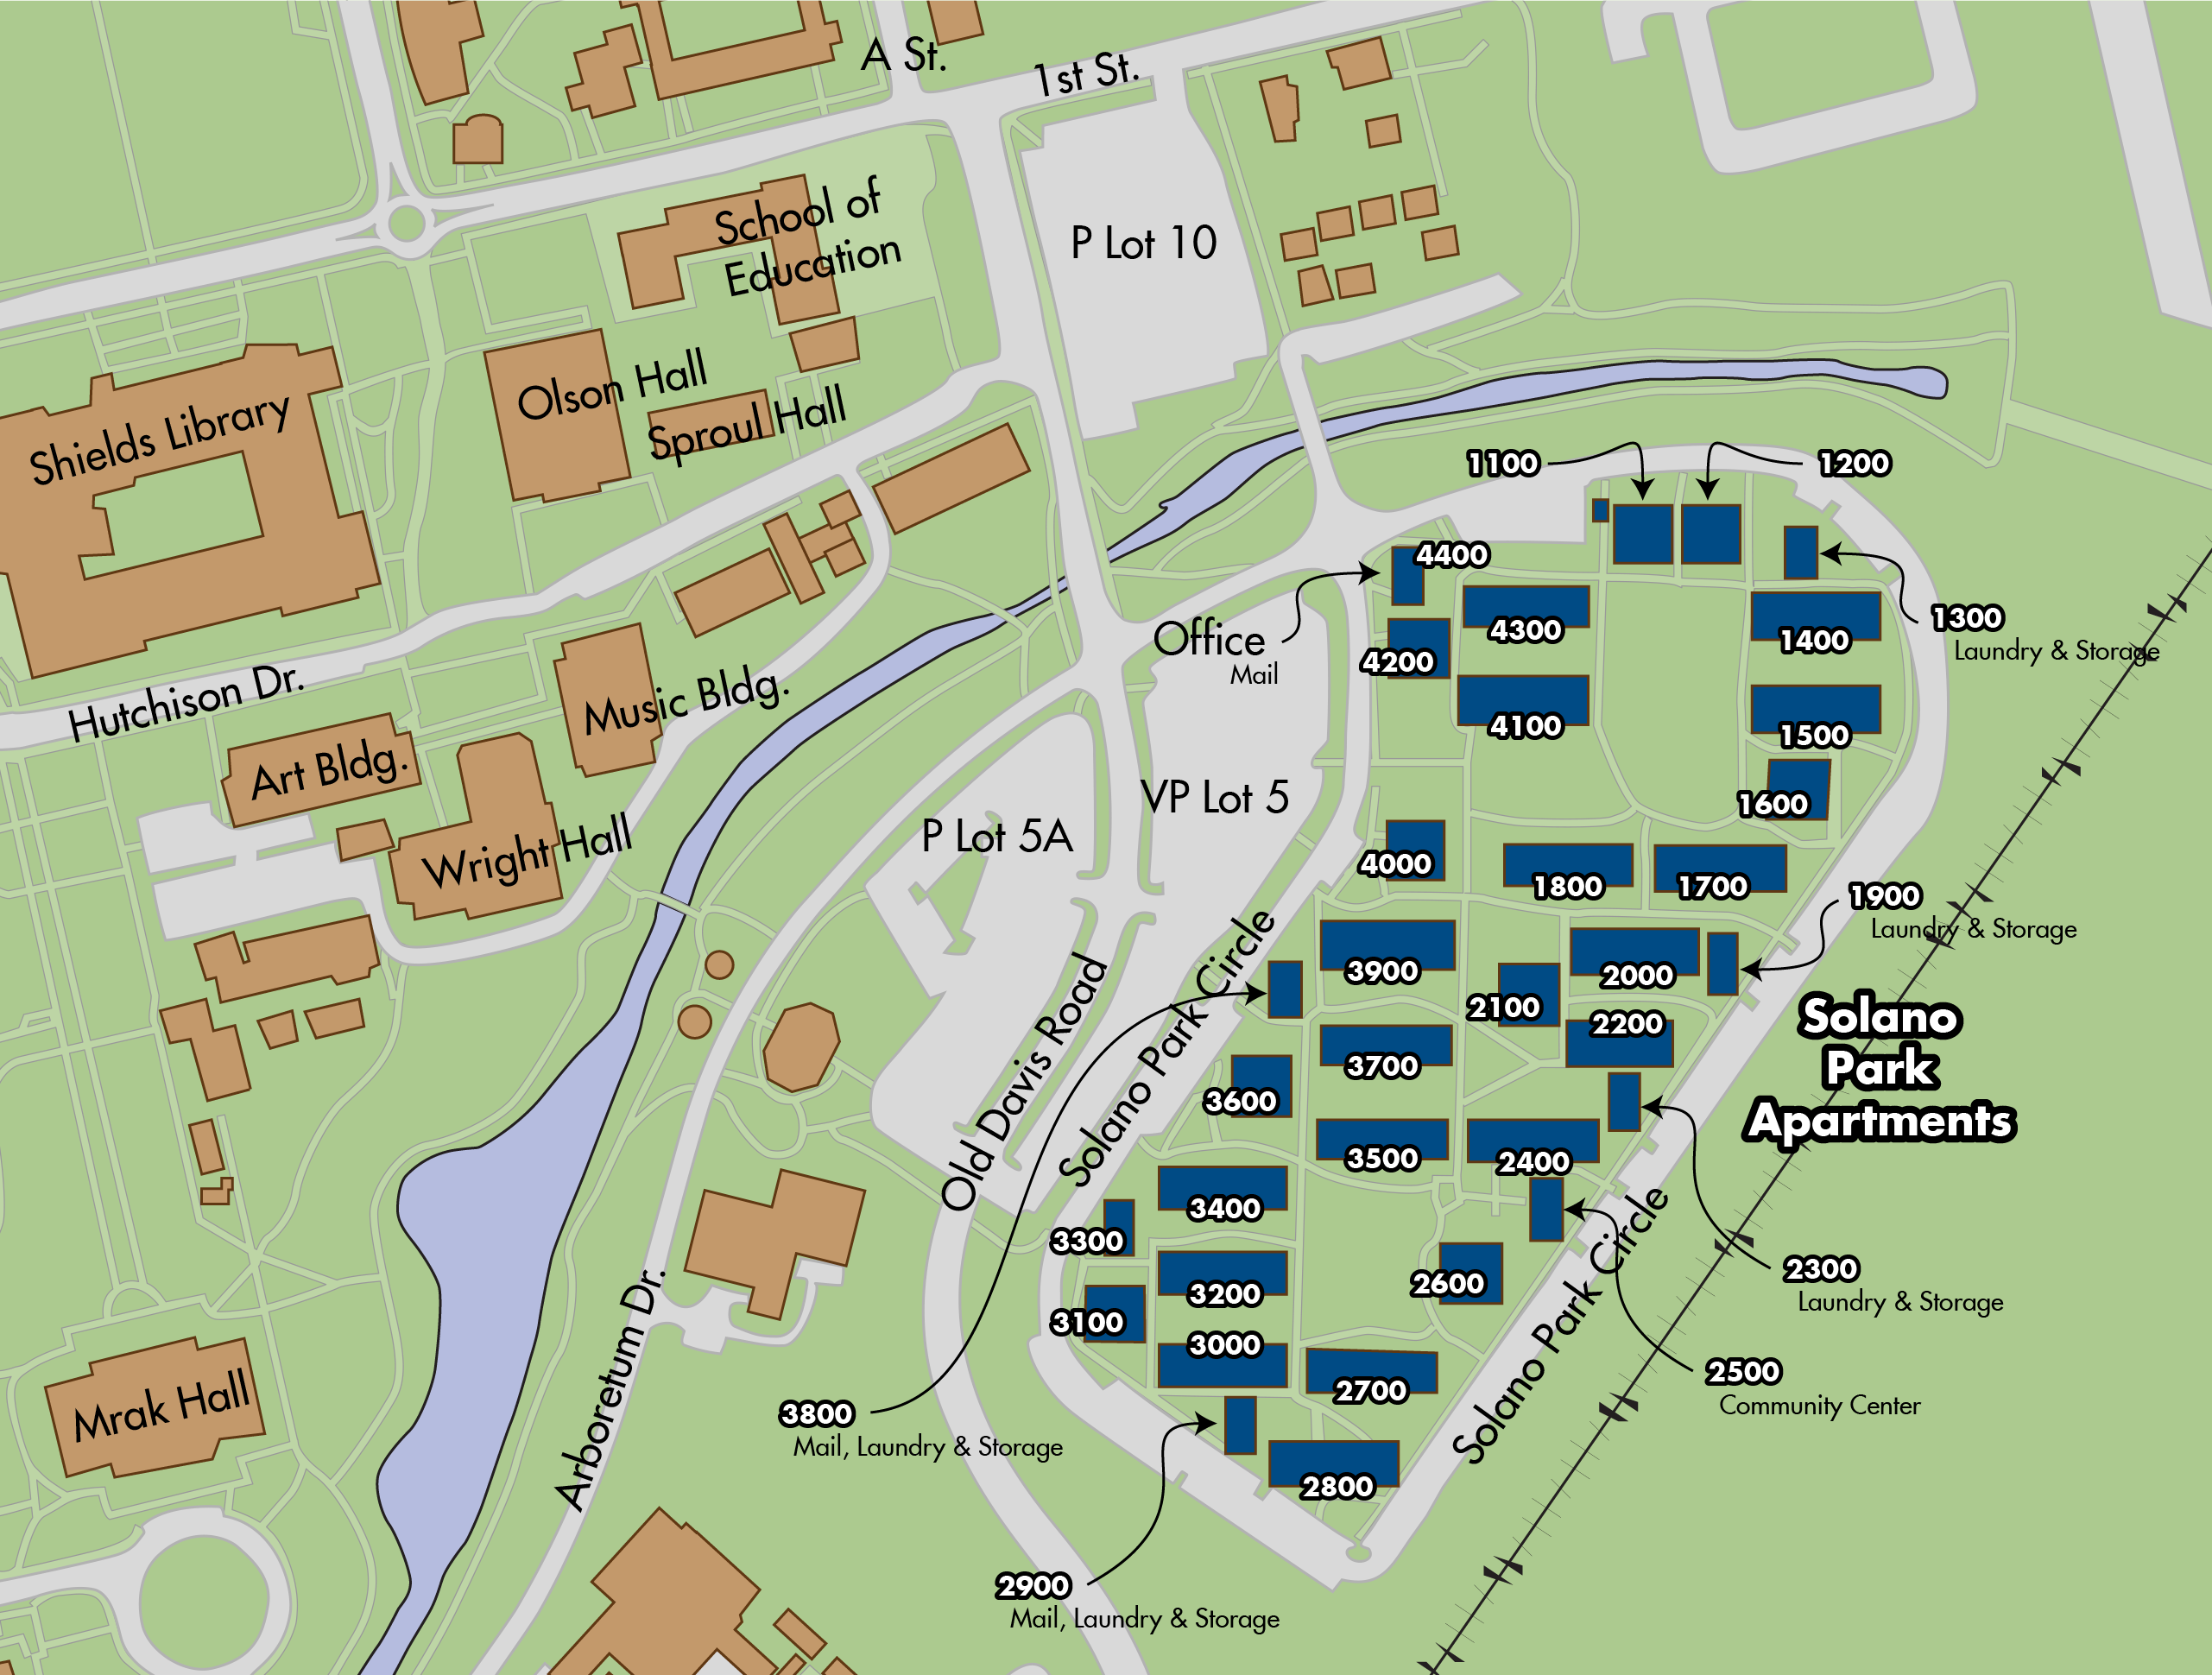 Map of Solano Park apartments locations on the UC Davis campus